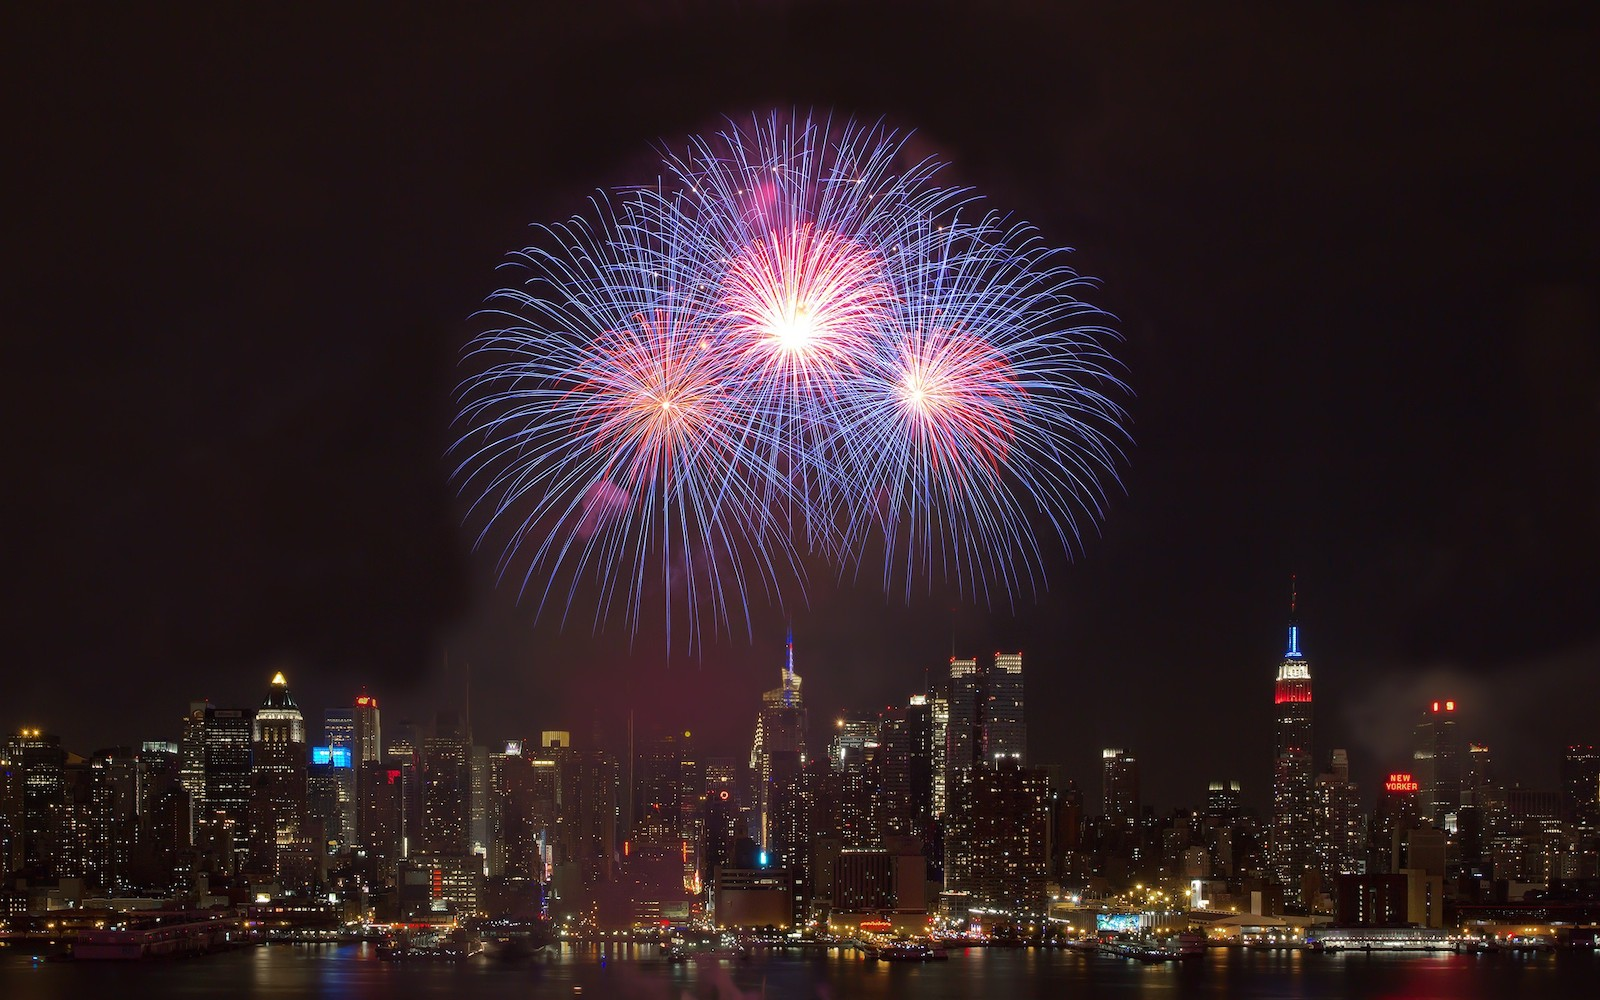 Will the markets see some fireworks this Summer?